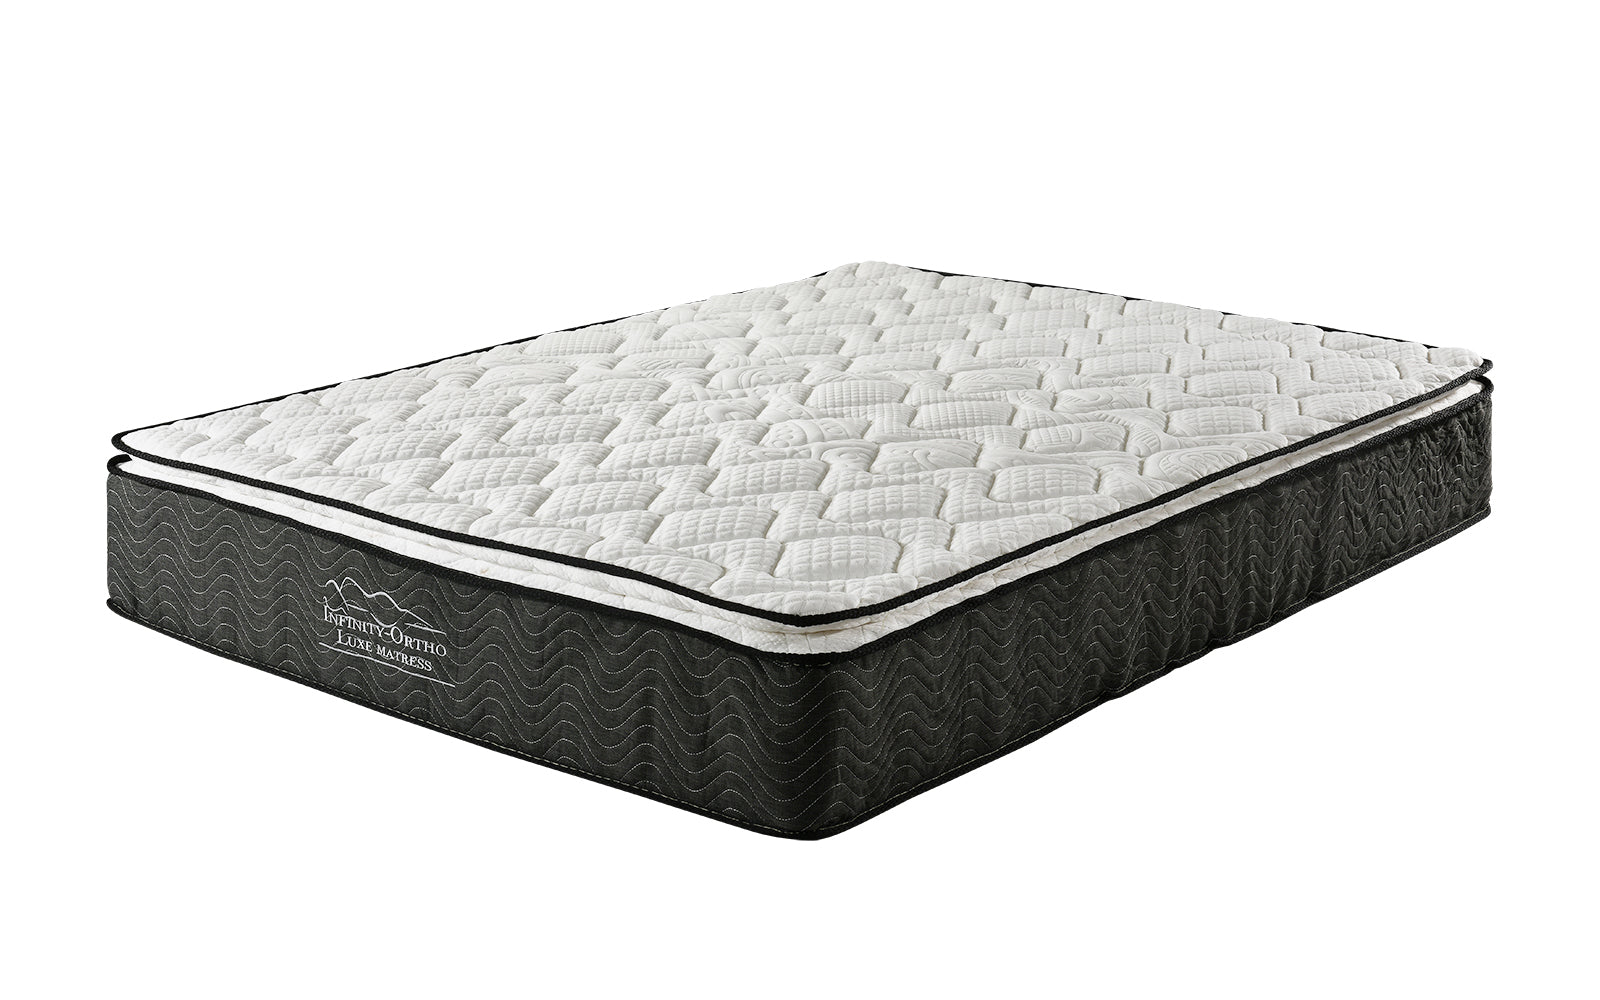 Foam Certified Pillow Top Mattress Image